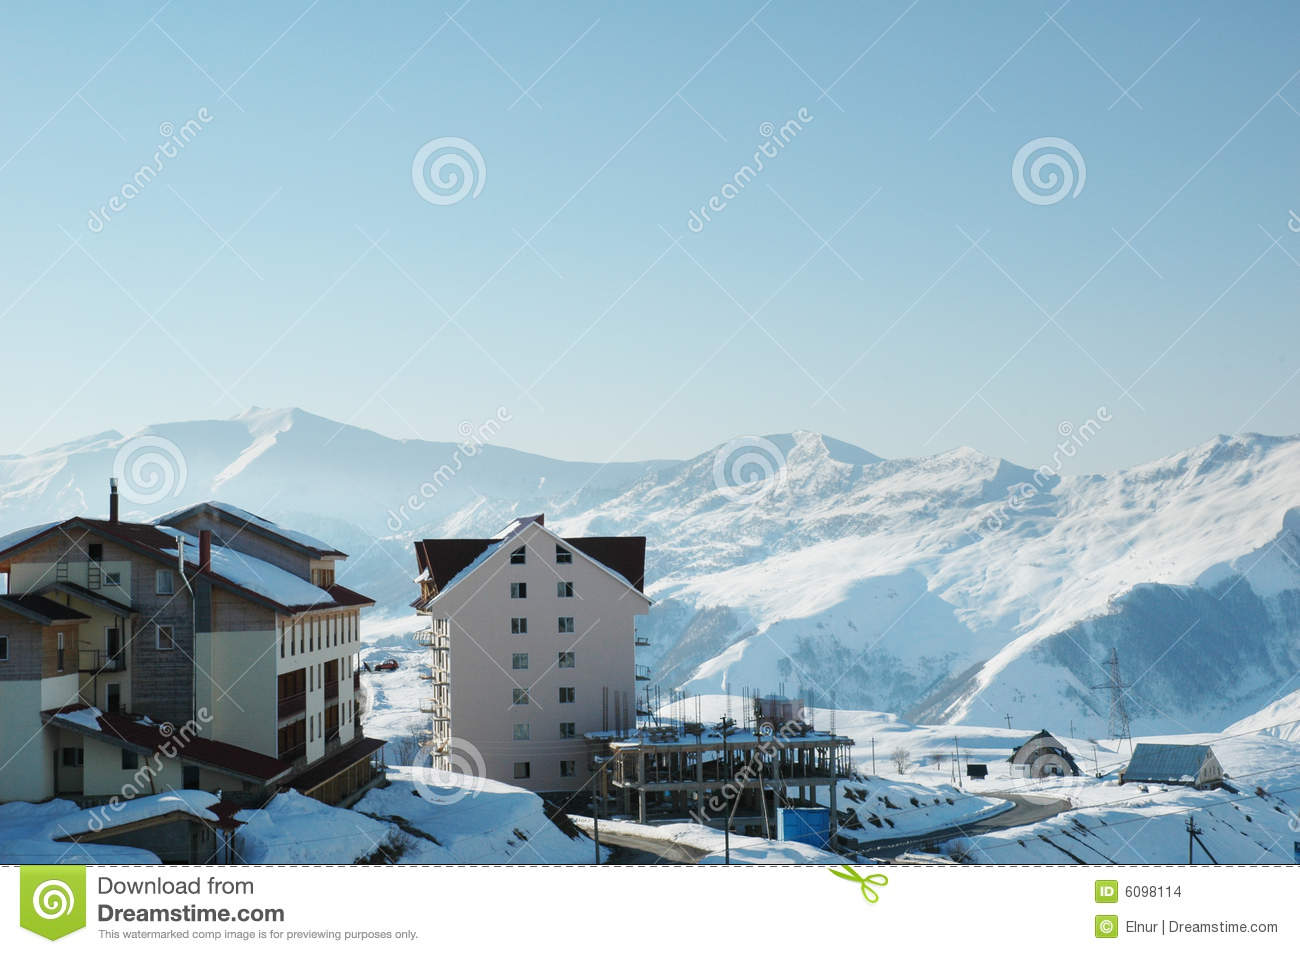 ski lodge in winter - photo #40